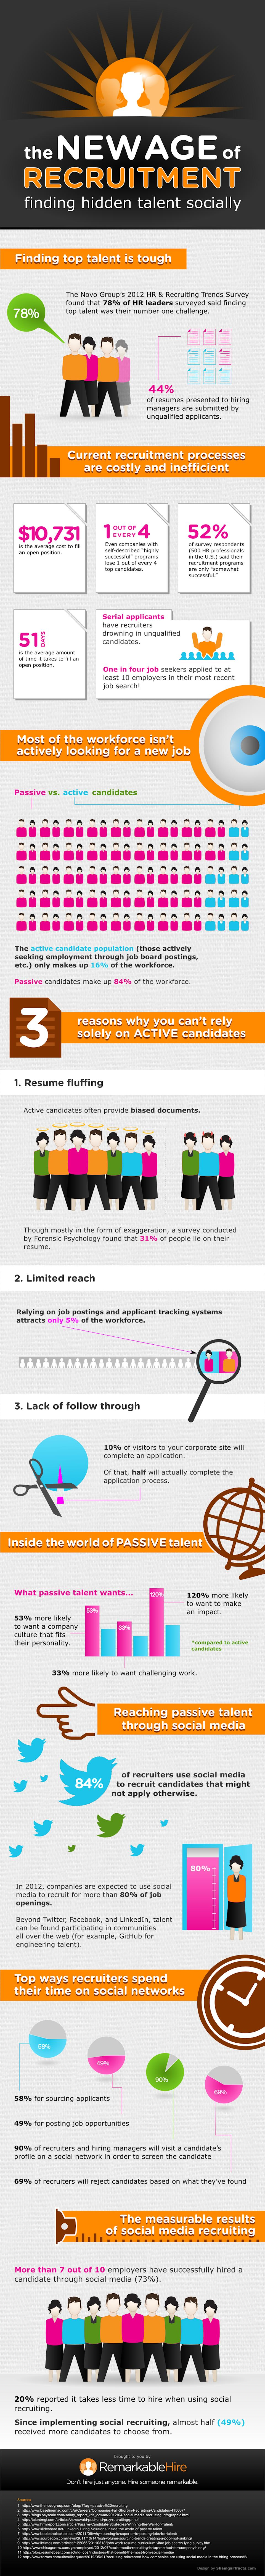 How to Find Top Tech Talent on Social Media